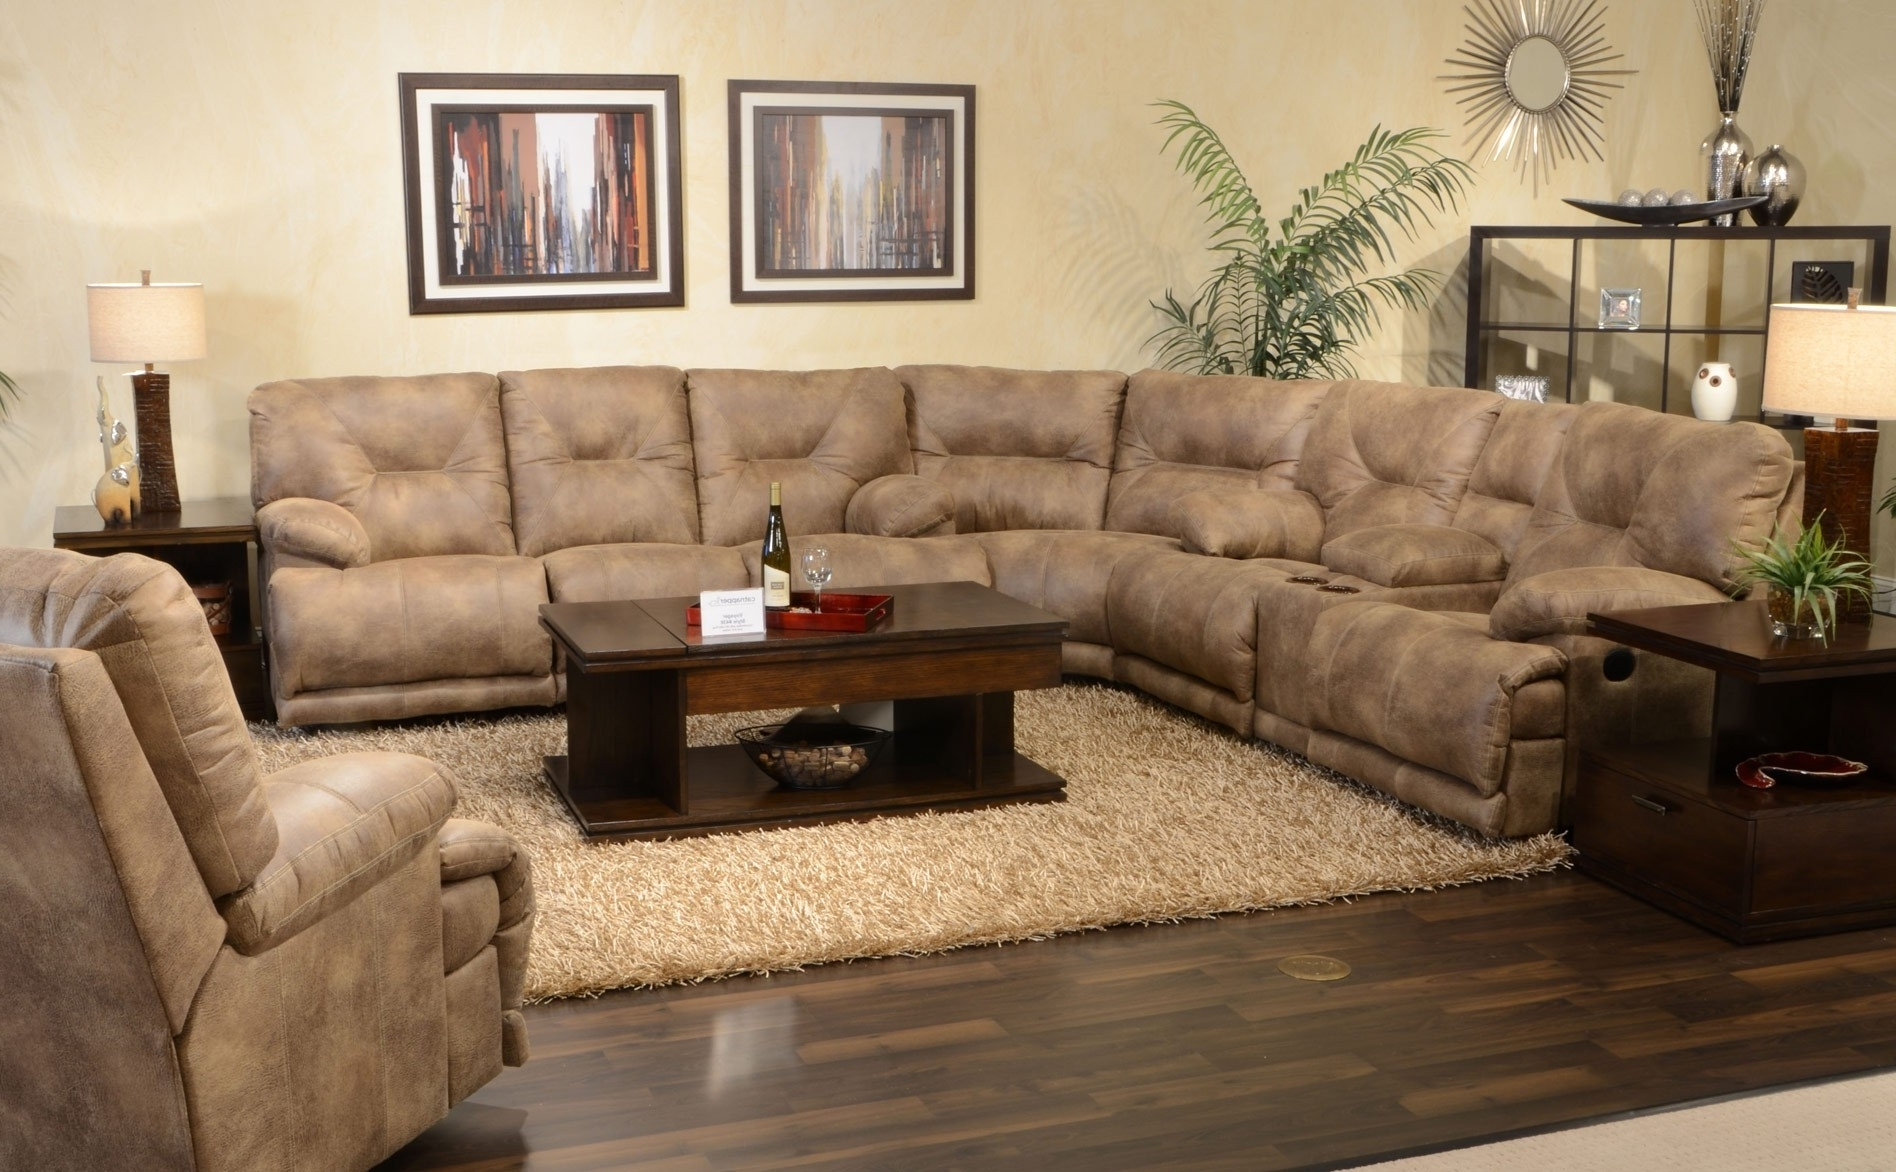 Curved Sectional Sofas With Recliner Within Trendy Living Room : Living Room Furniture Sectional Modern Sofa (View 13 of 15)